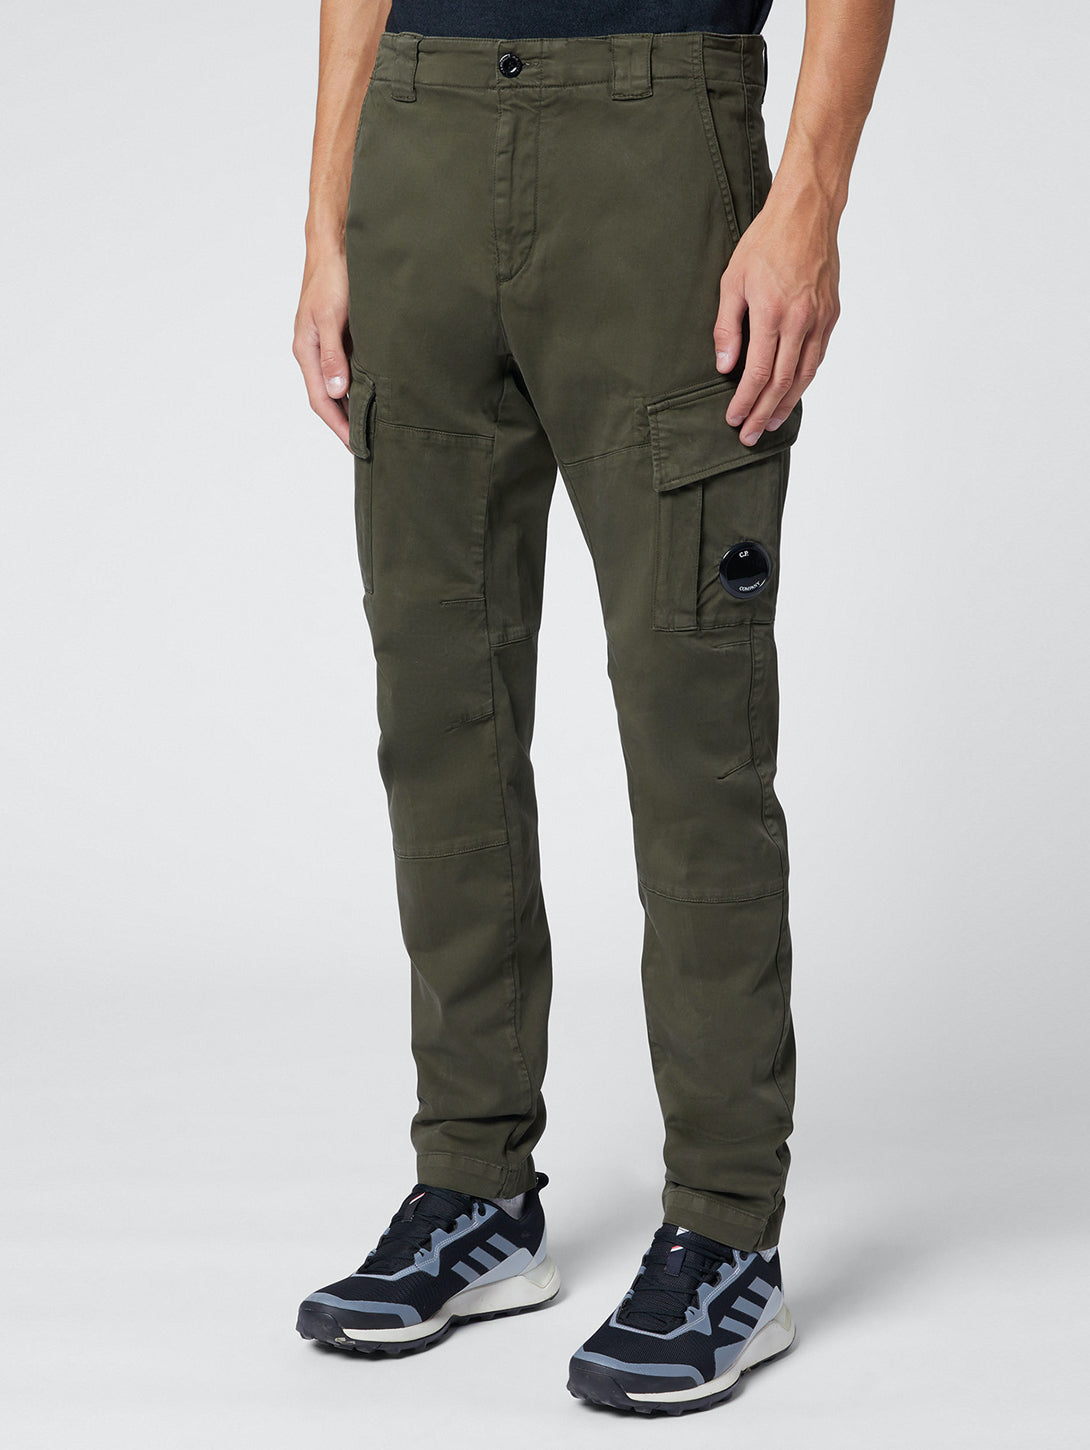 Garment Dyed Stretch Sateen Fitted Lens Pocket Cargo Pant - Ivy Green-CP COMPANY-Over the Rainbow